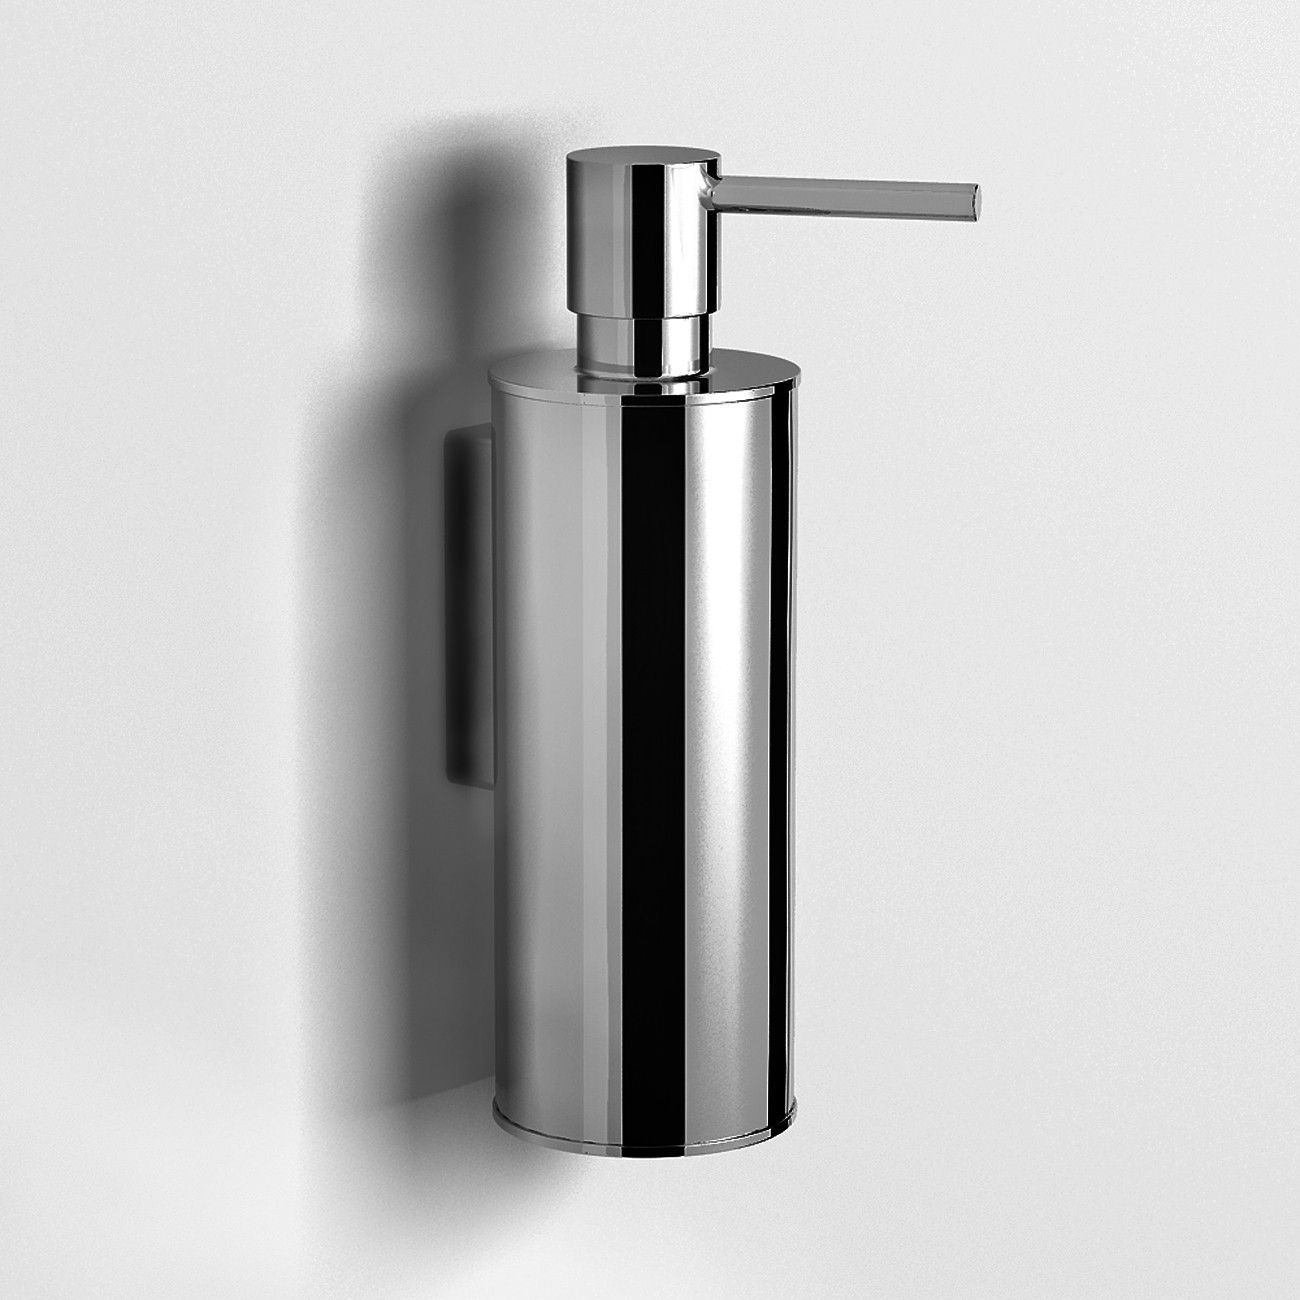 Genial Choose The Right Soap Dispenser For Your House